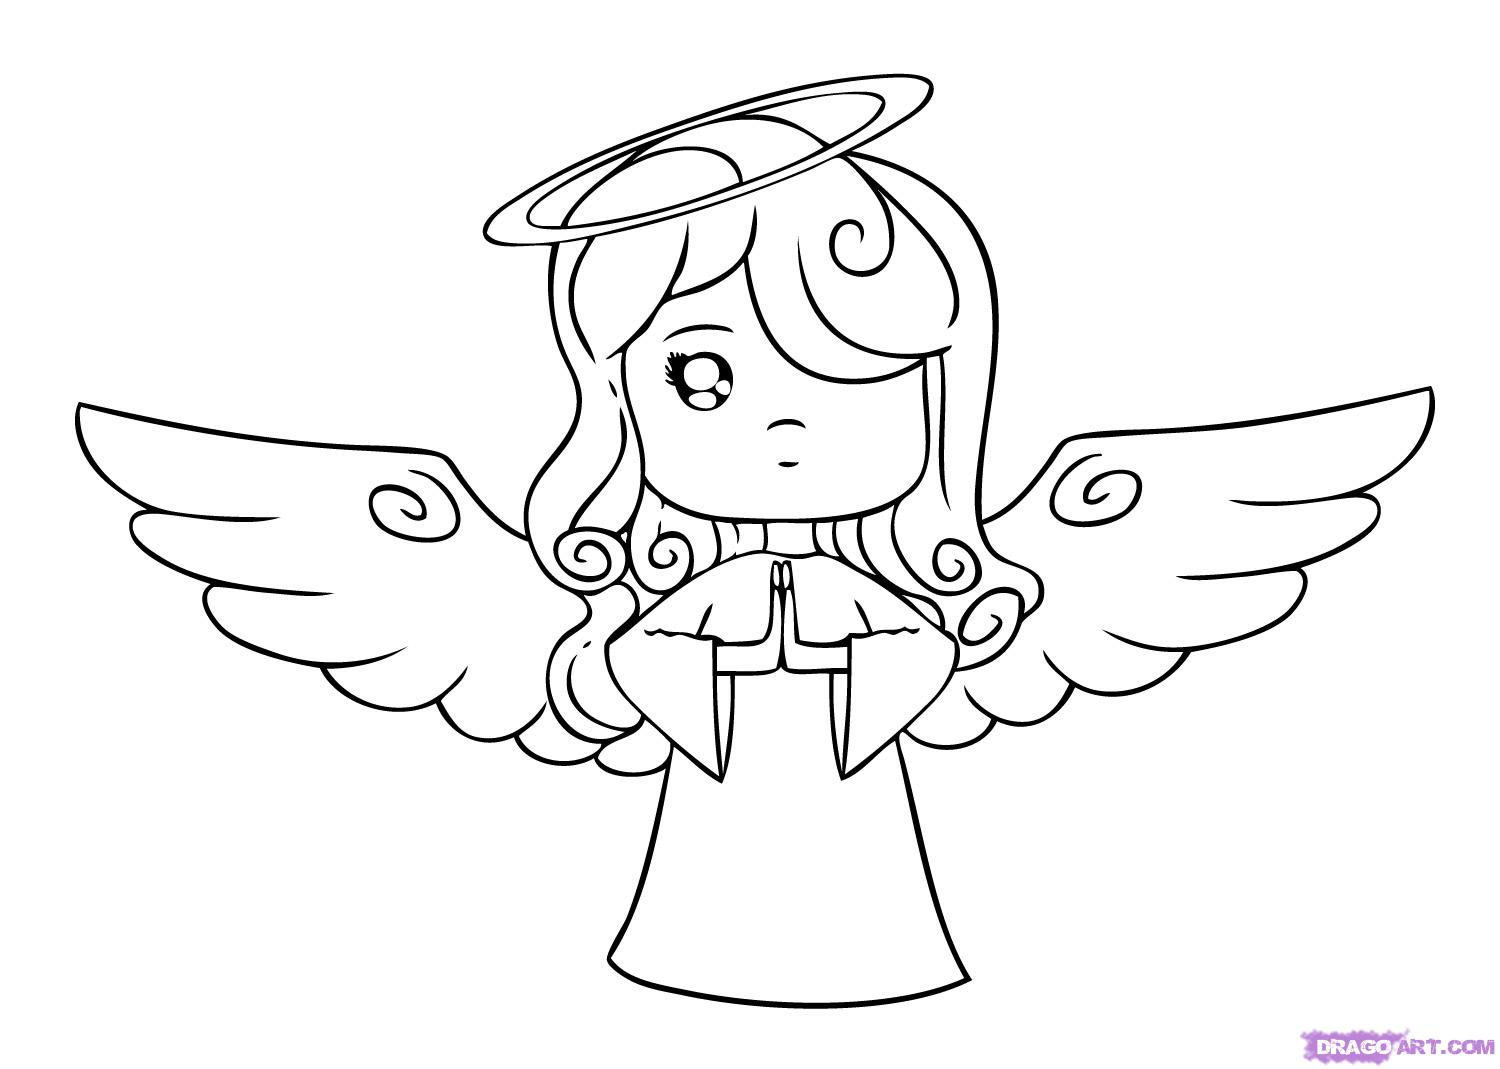 Angel Wings Line Drawing at GetDrawings.com | Free for personal use ...